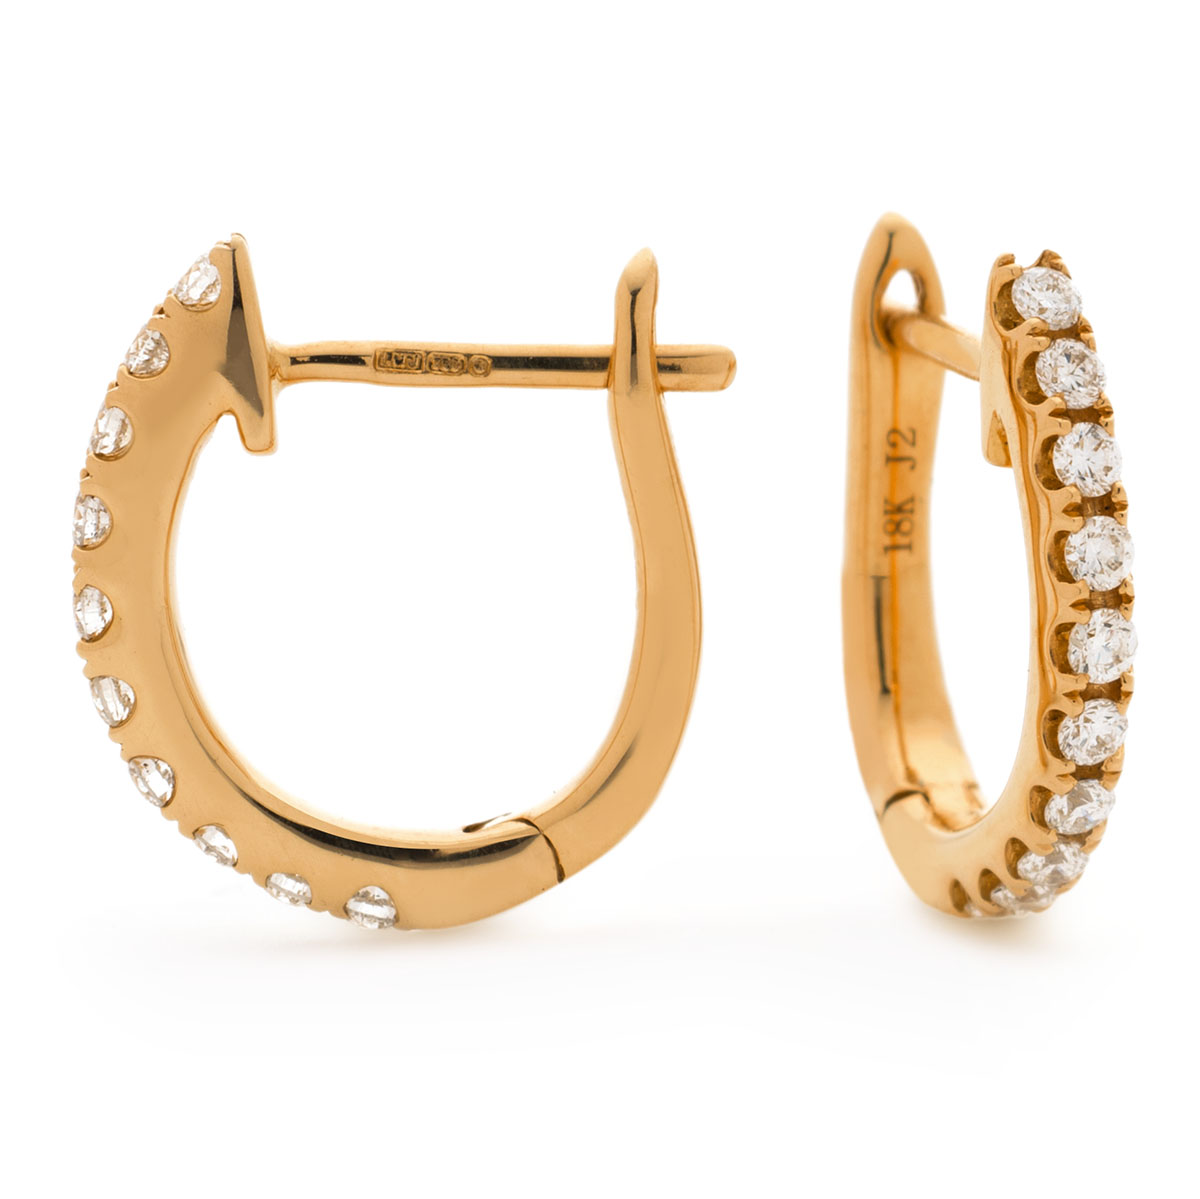 Round Shape Claw Set Hoops Diamond Earrings